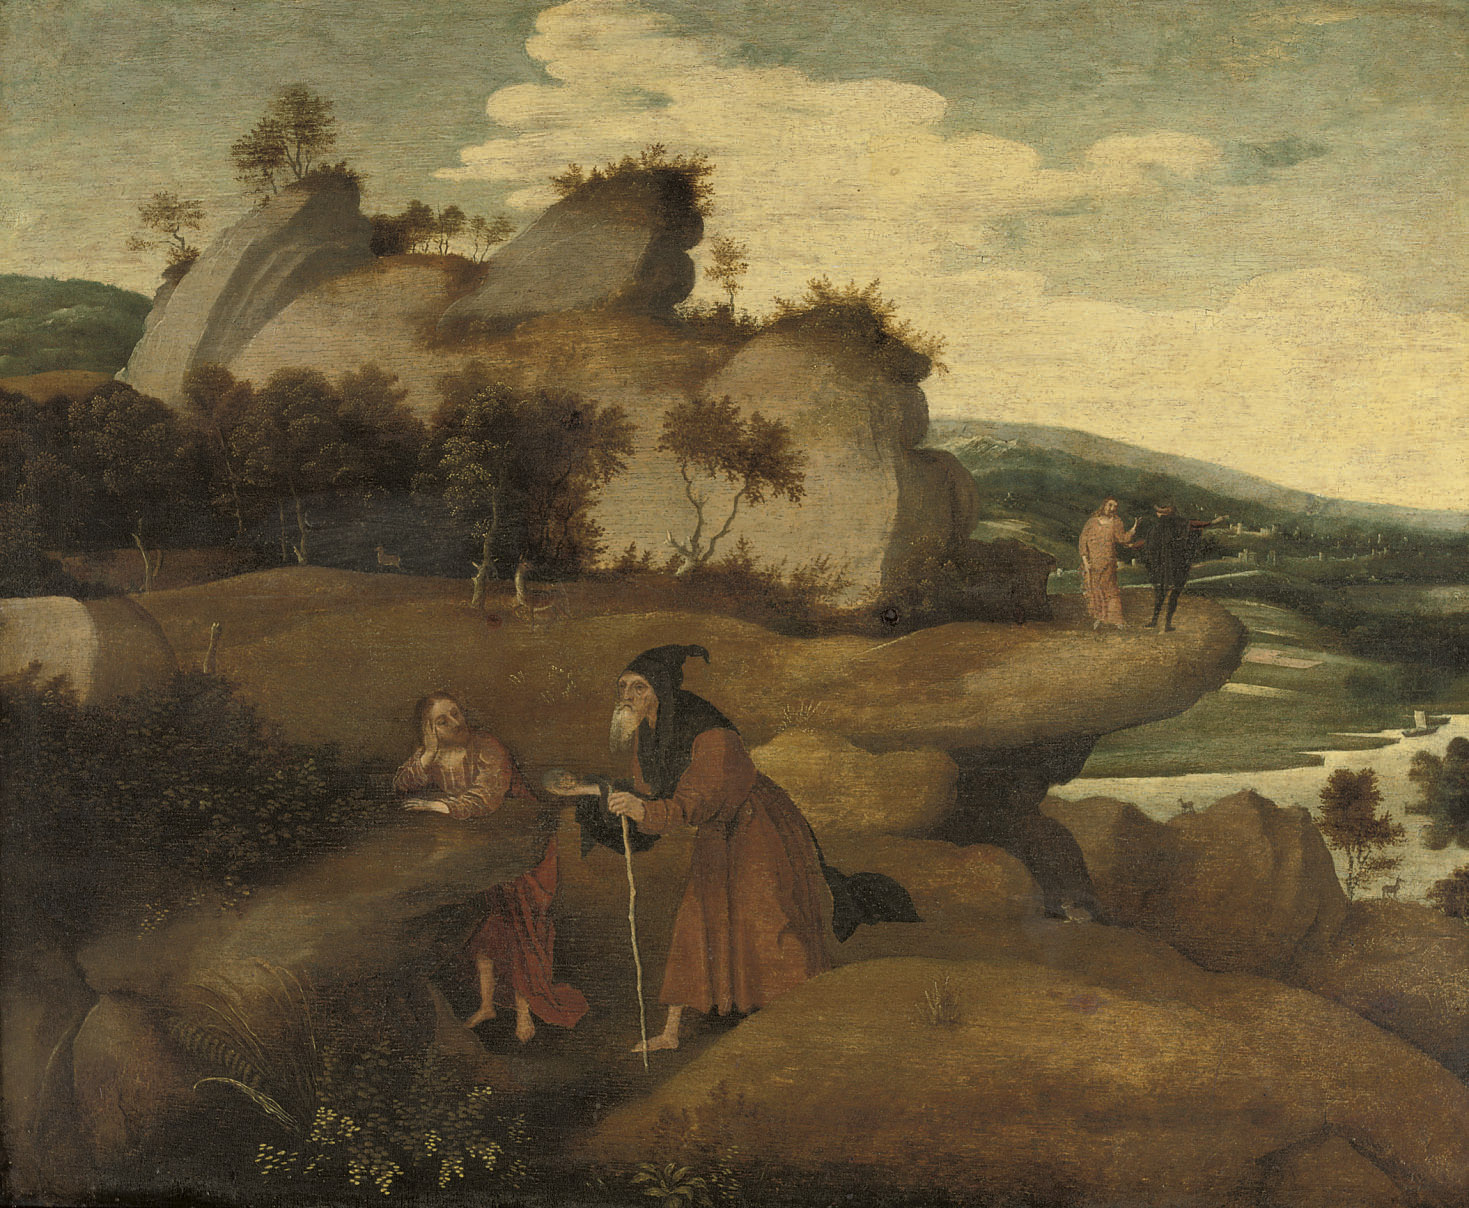 Attributed to Jan Mostaert (Ha